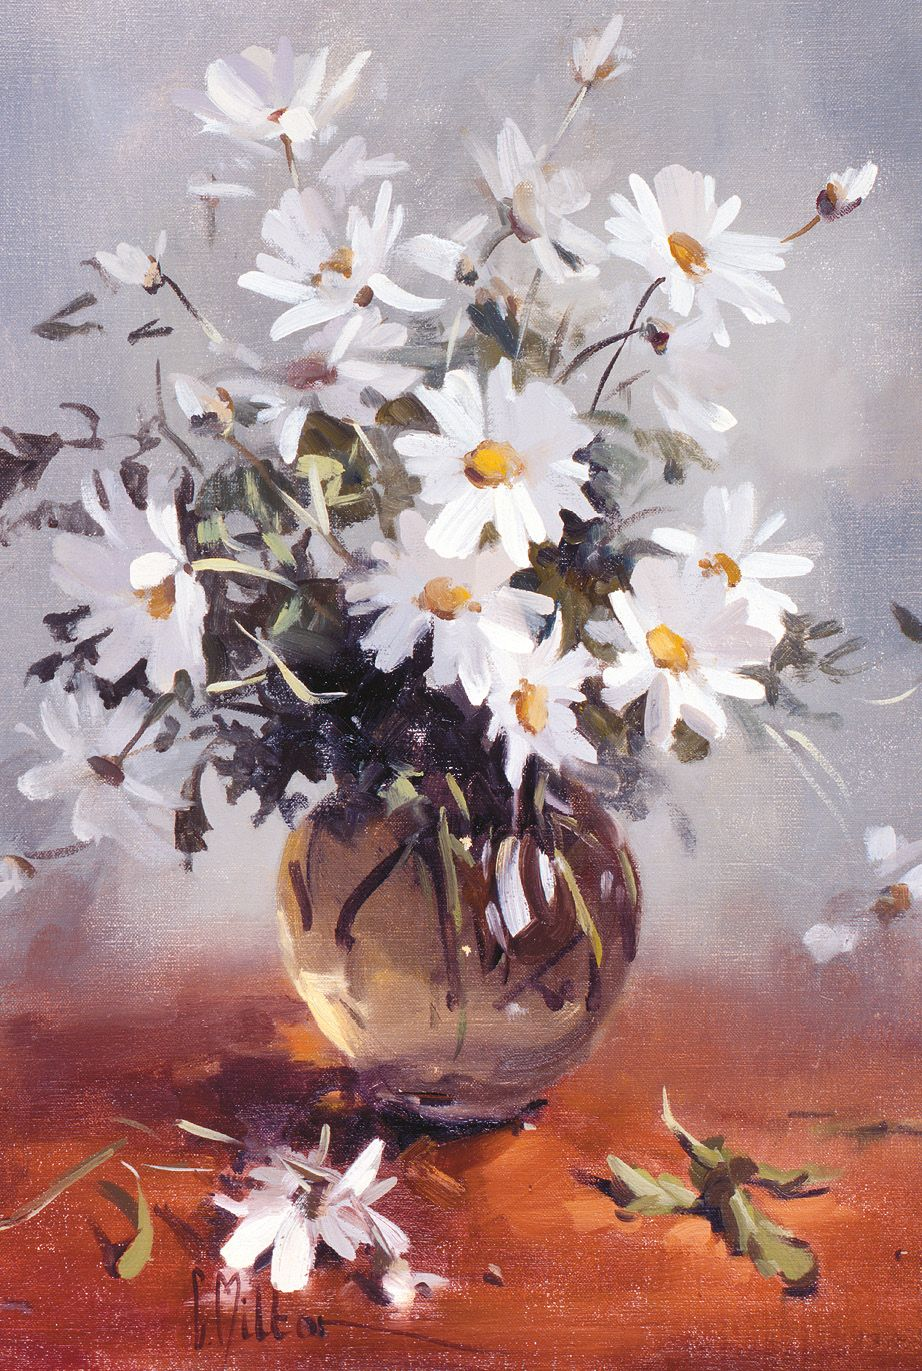 'White Daisies', by Carole Milton Colourful New Releases